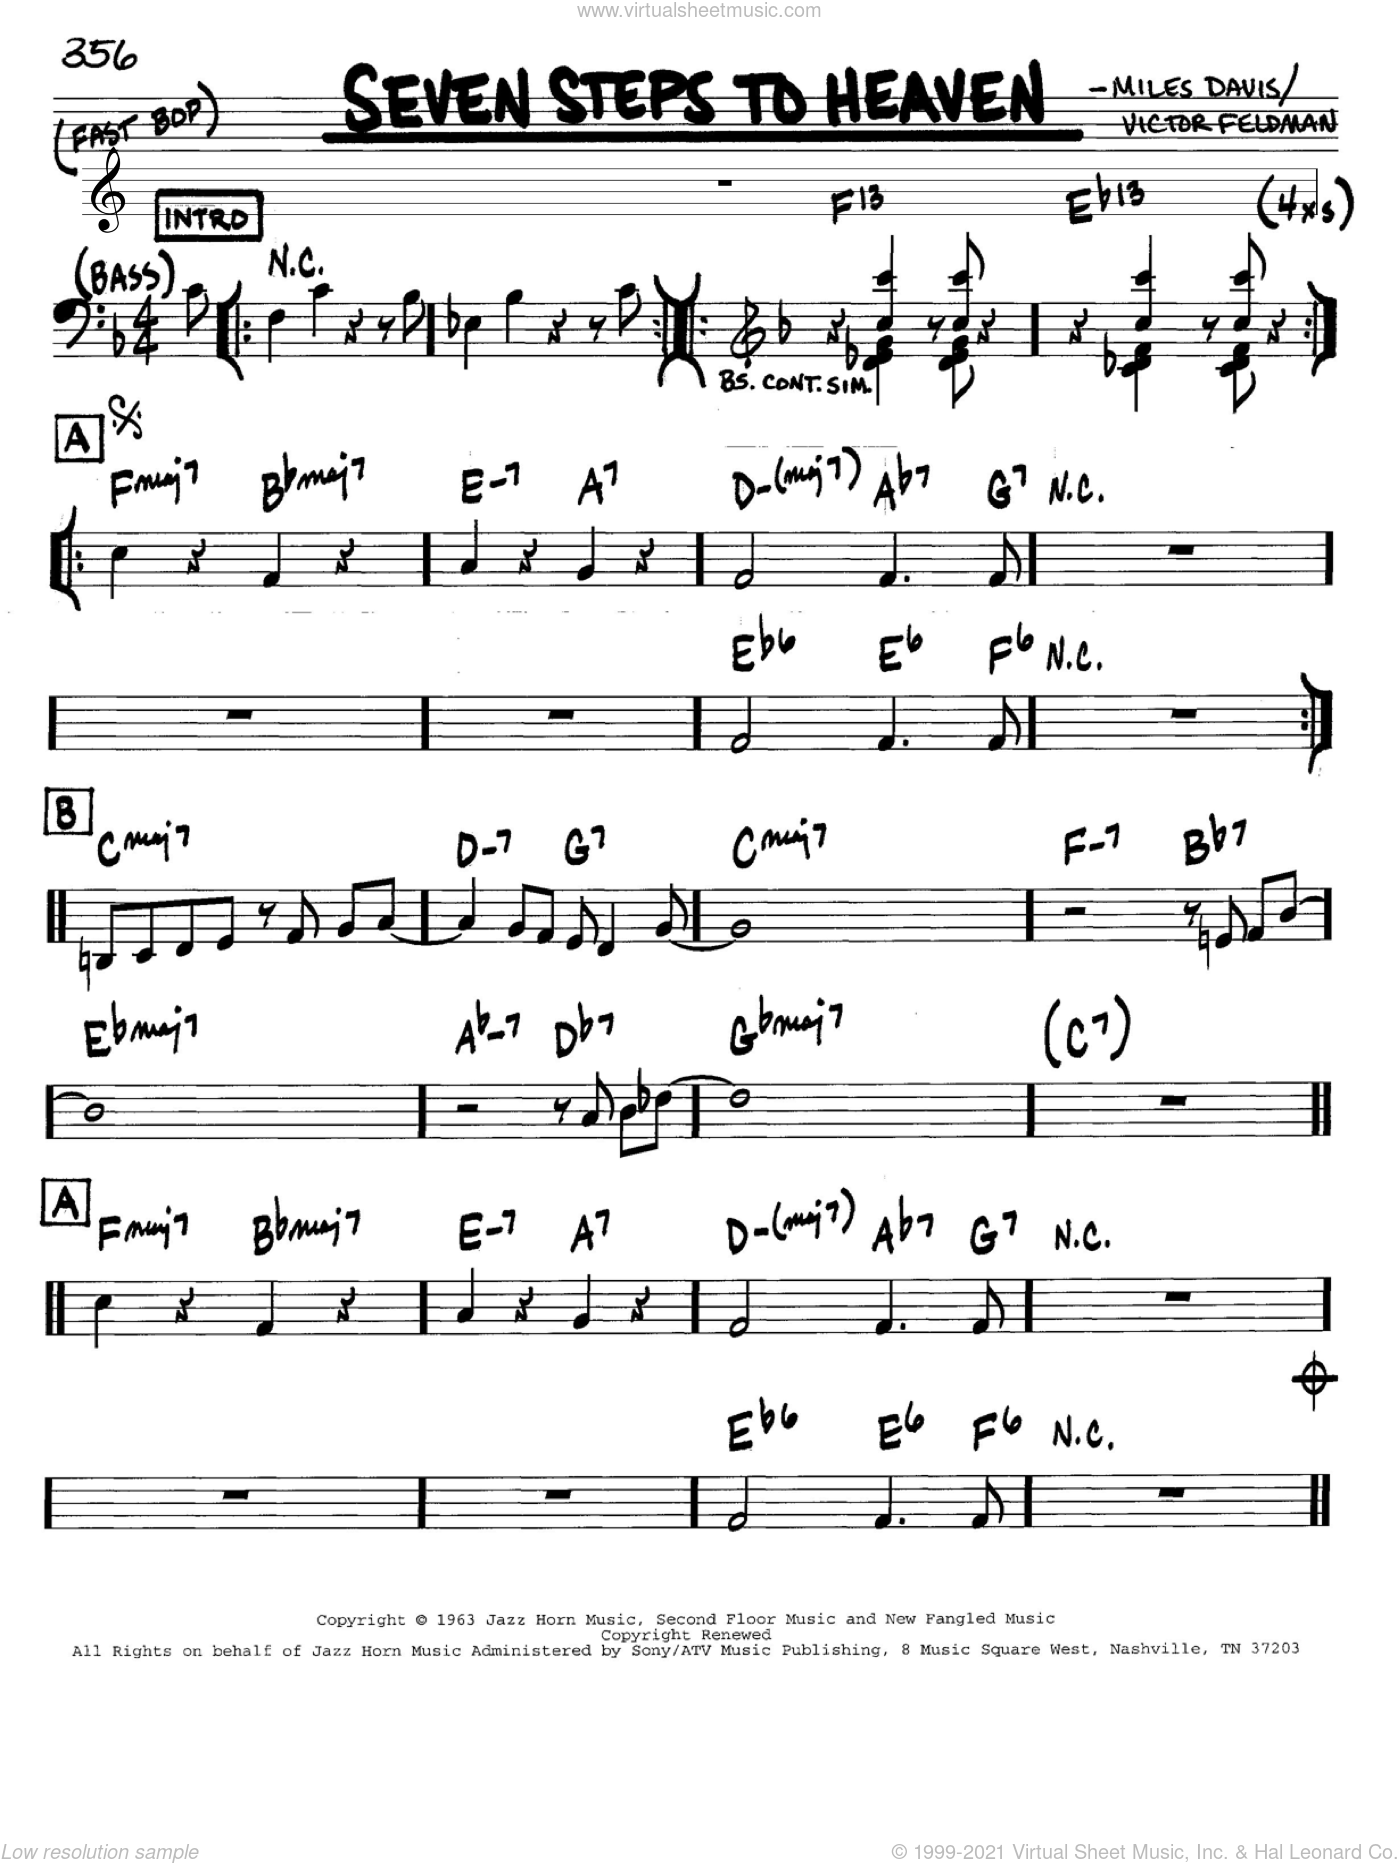 Seven Steps To Heaven sheet music for voice and other instruments (C) by Victor Feldman